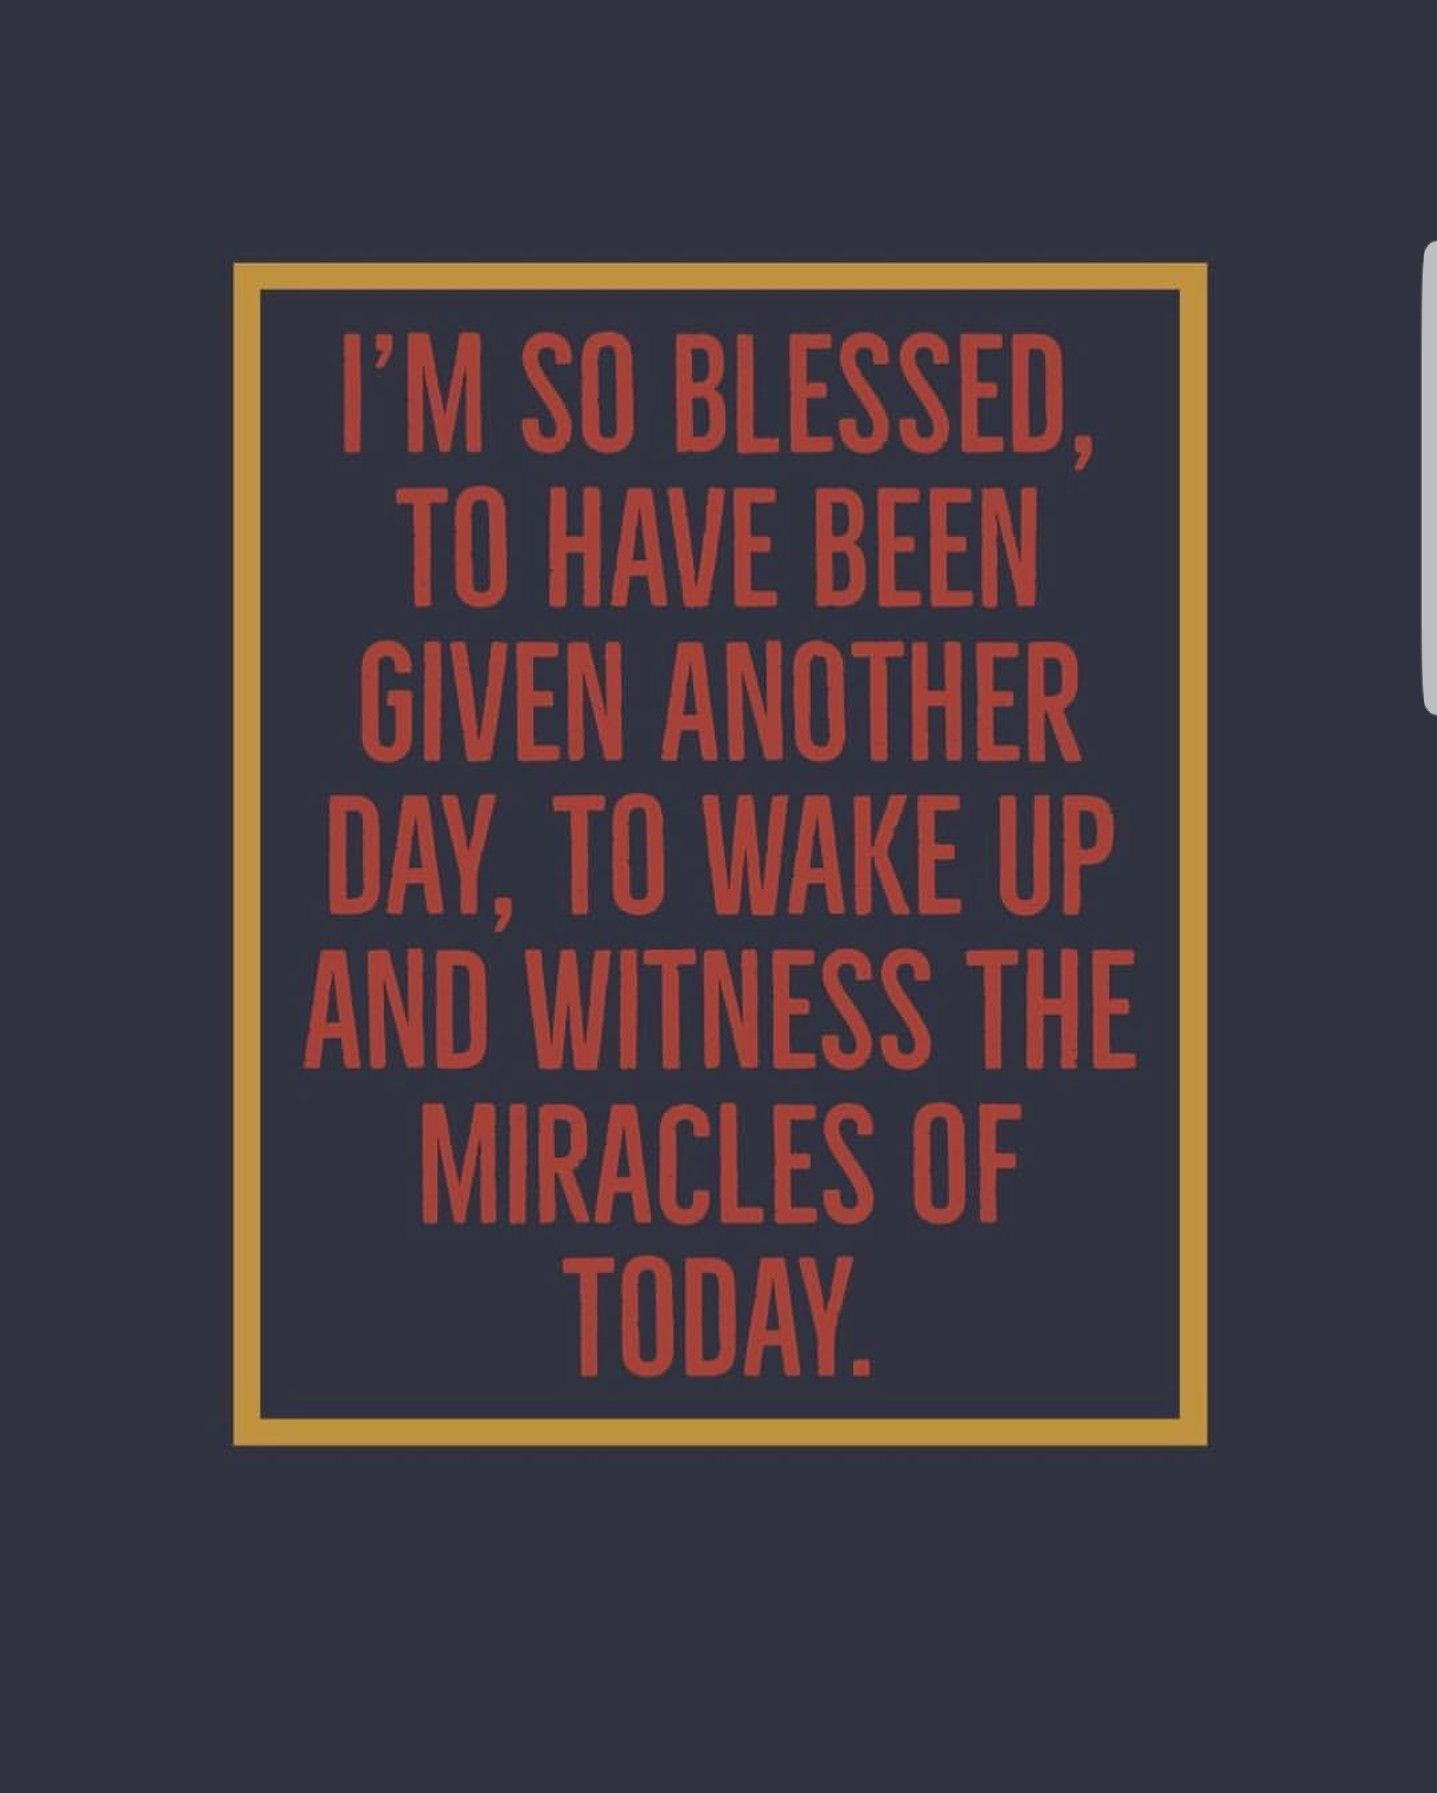 Blessedone Another day quote